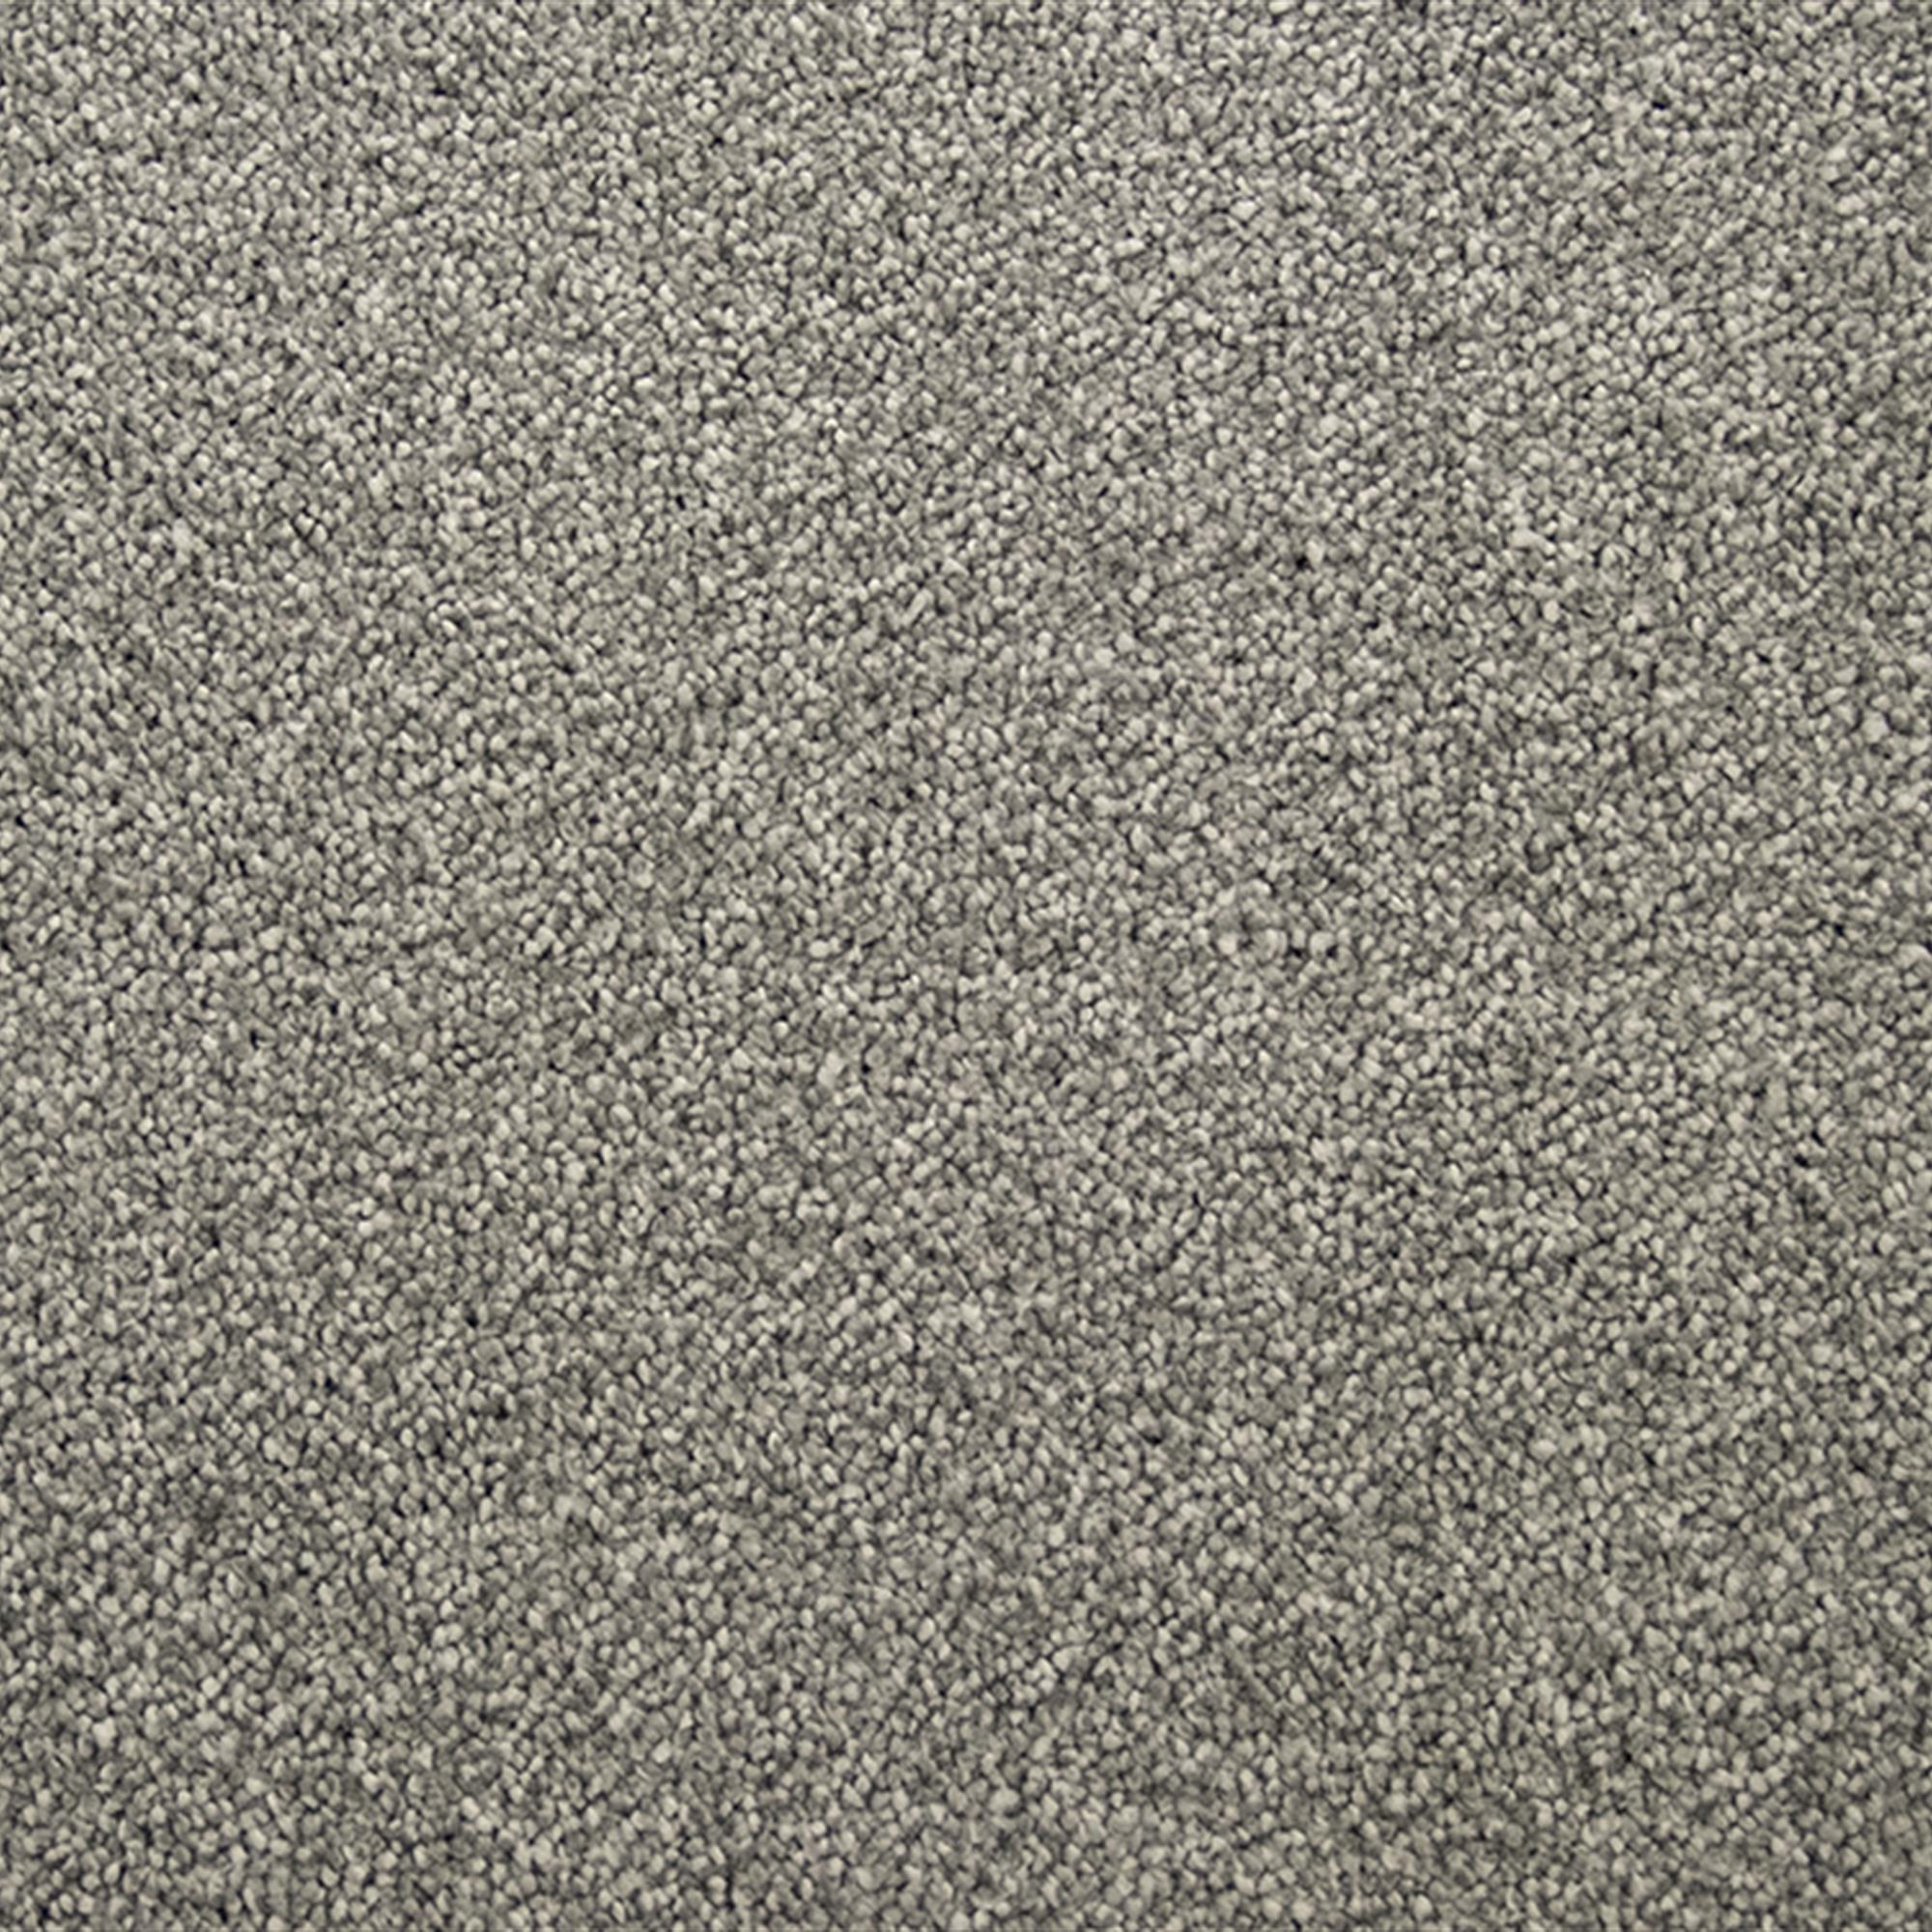 Signature Eloquence Carpet, 937 Silver, swatch